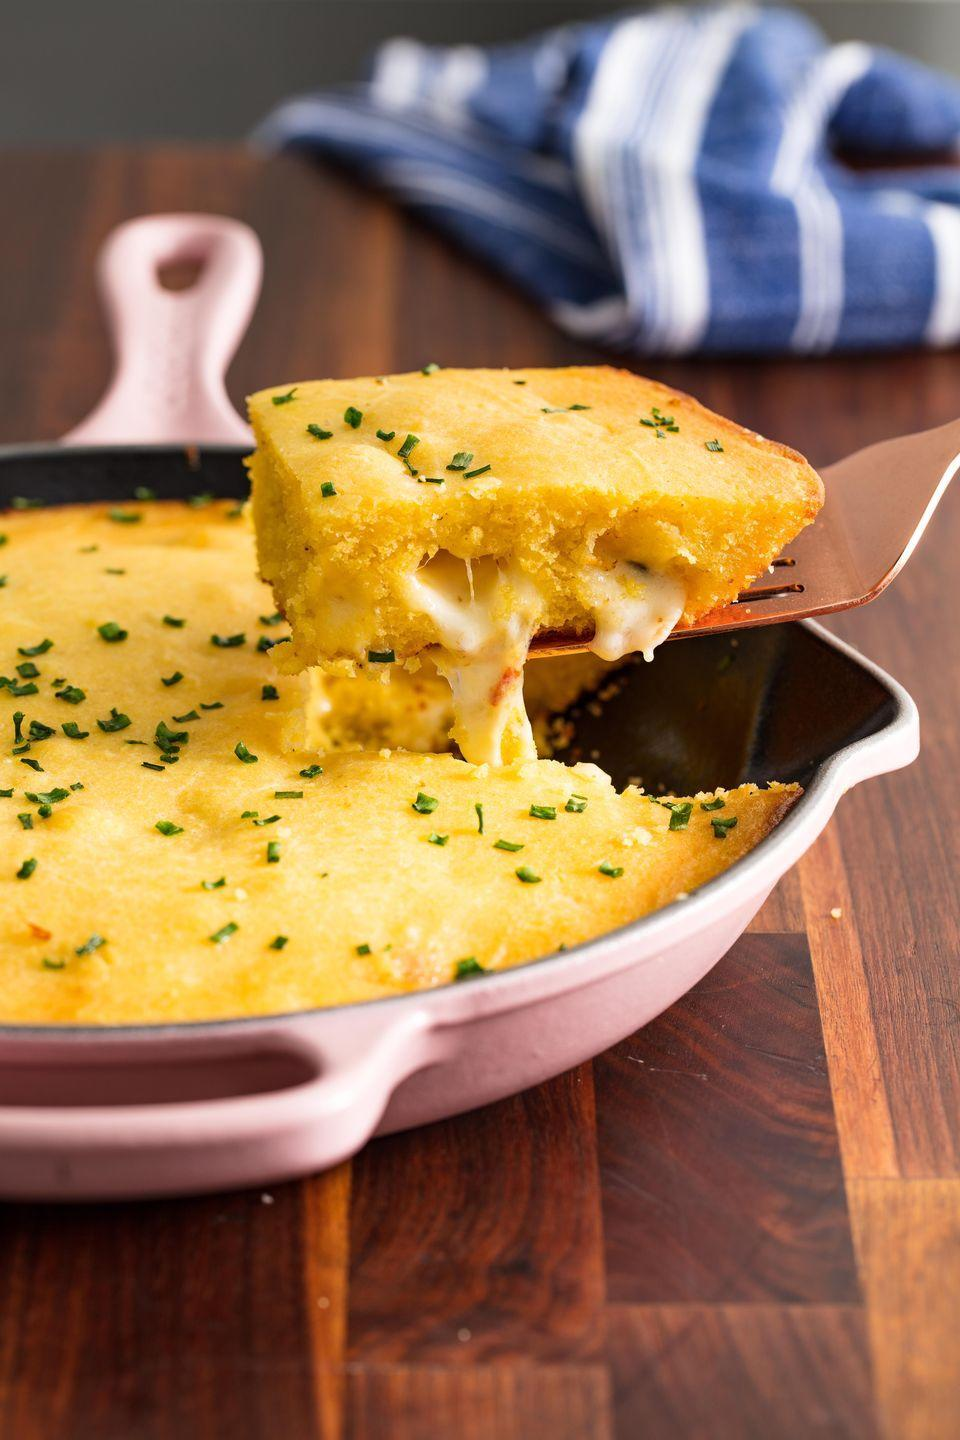 """<p>This isn't your ordinary cheesy cornbread. It's cornbread <em>STUFFED</em> with an entire layer of cheese.</p><p>Get the recipe from <a href=""""https://www.delish.com/cooking/recipe-ideas/recipes/a48772/cheese-stuffed-cornbread/"""" rel=""""nofollow noopener"""" target=""""_blank"""" data-ylk=""""slk:Delish"""" class=""""link rapid-noclick-resp"""">Delish</a>.</p>"""